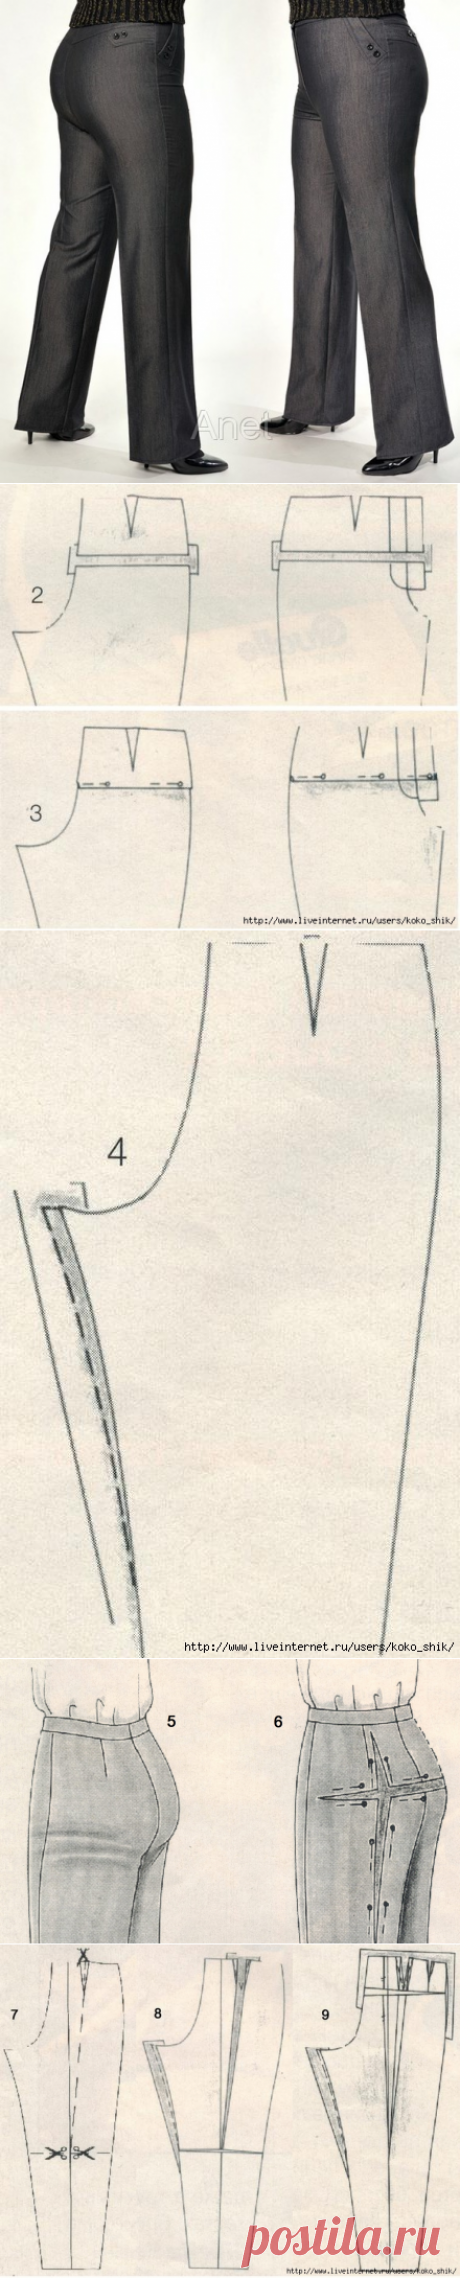 We correct a pattern of trousers. That trousers fitted well